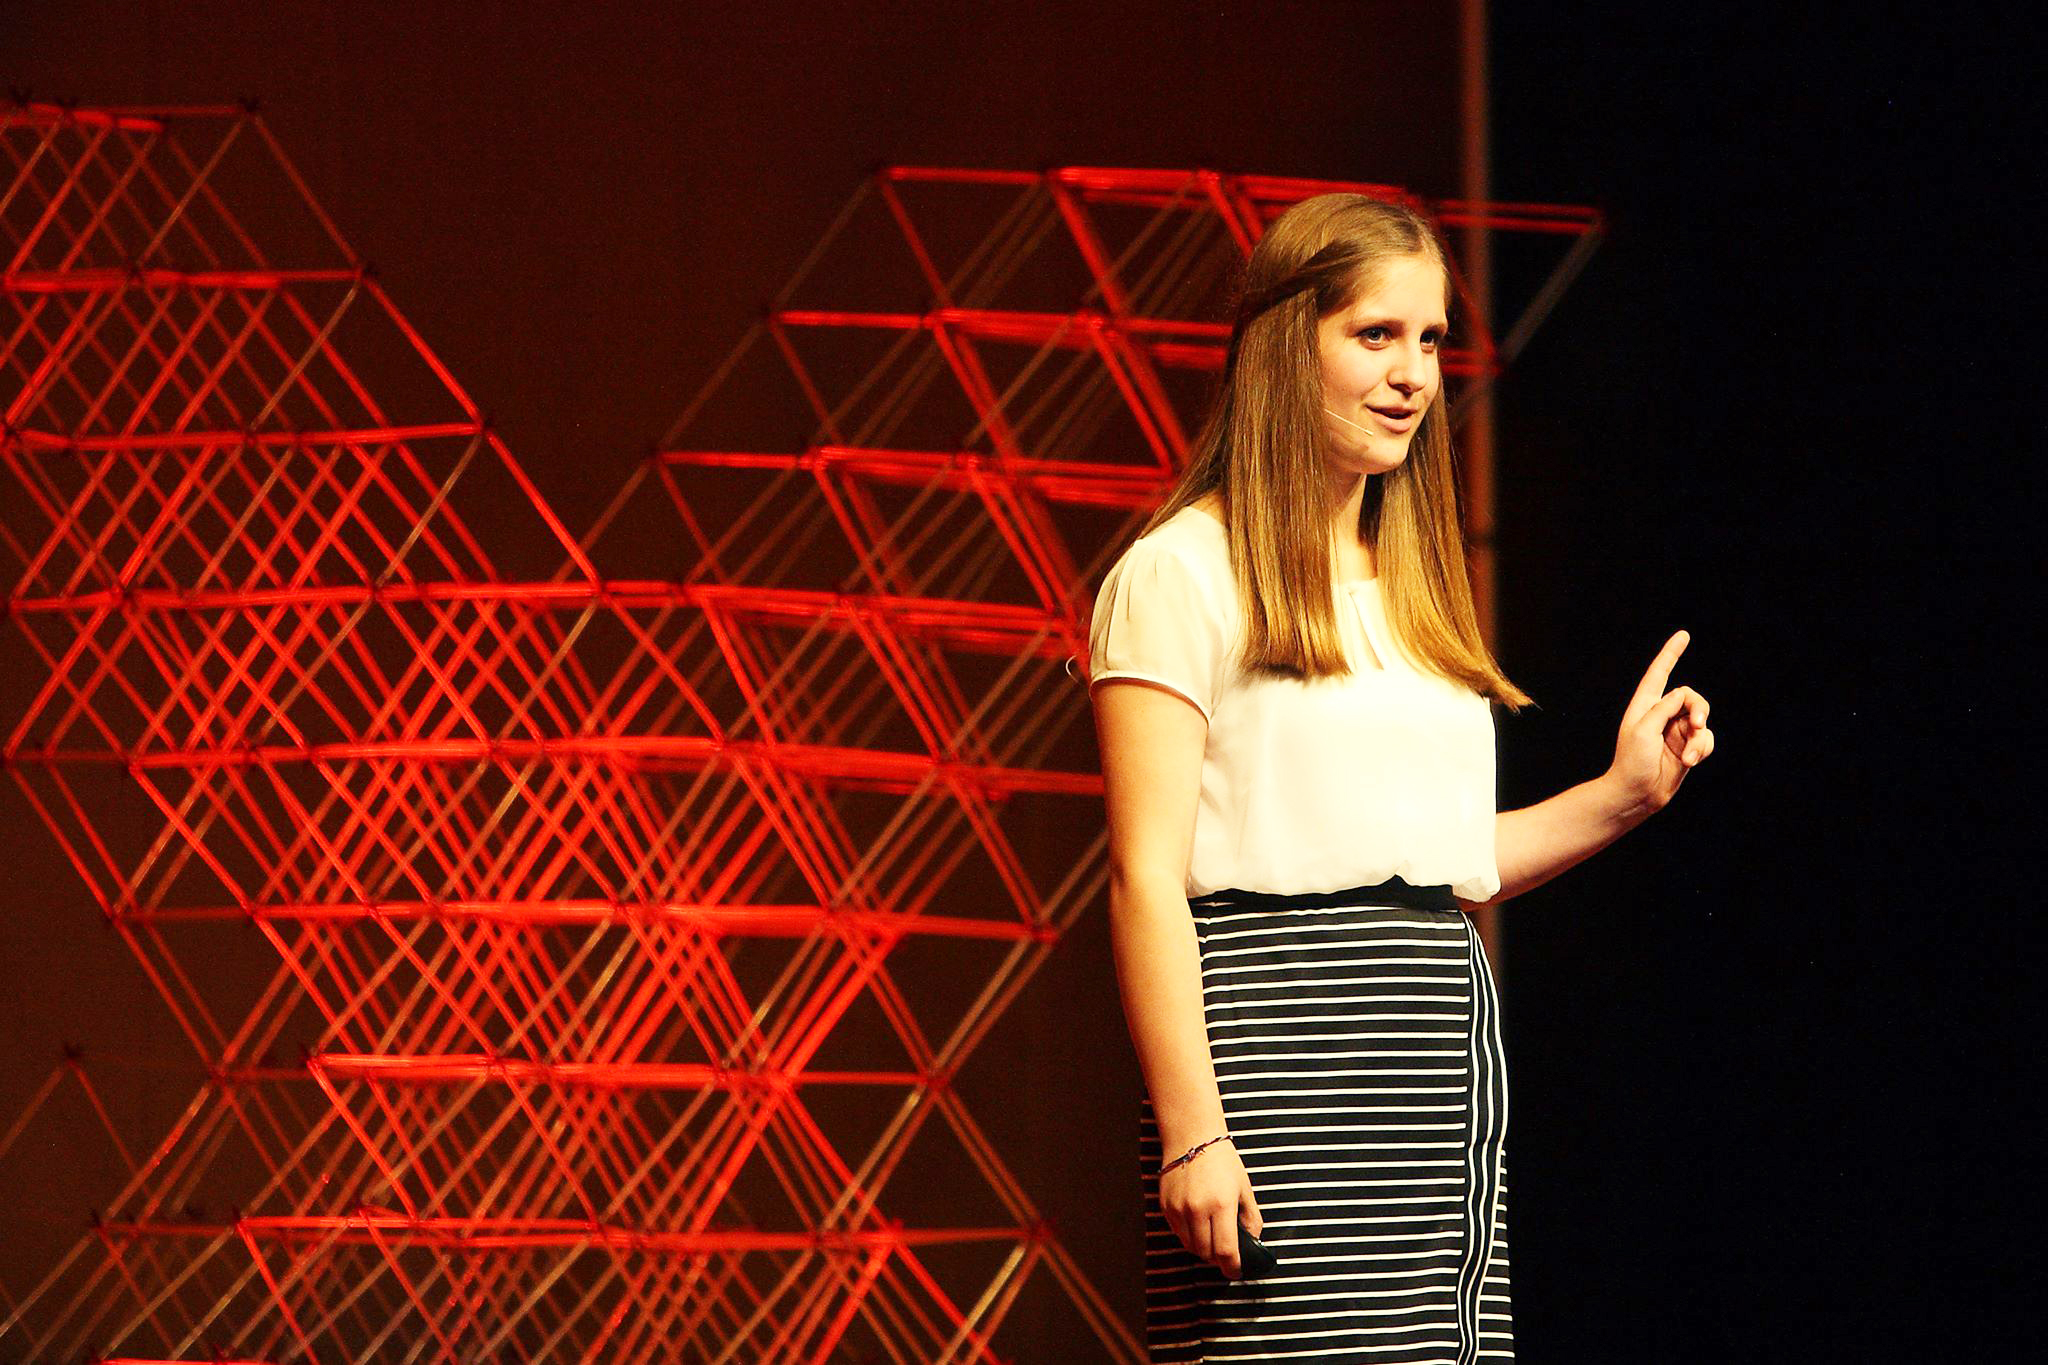 Hattie Seten at TEDxBrookings on Oct. 1. Photo courtesy TEDxBrookings